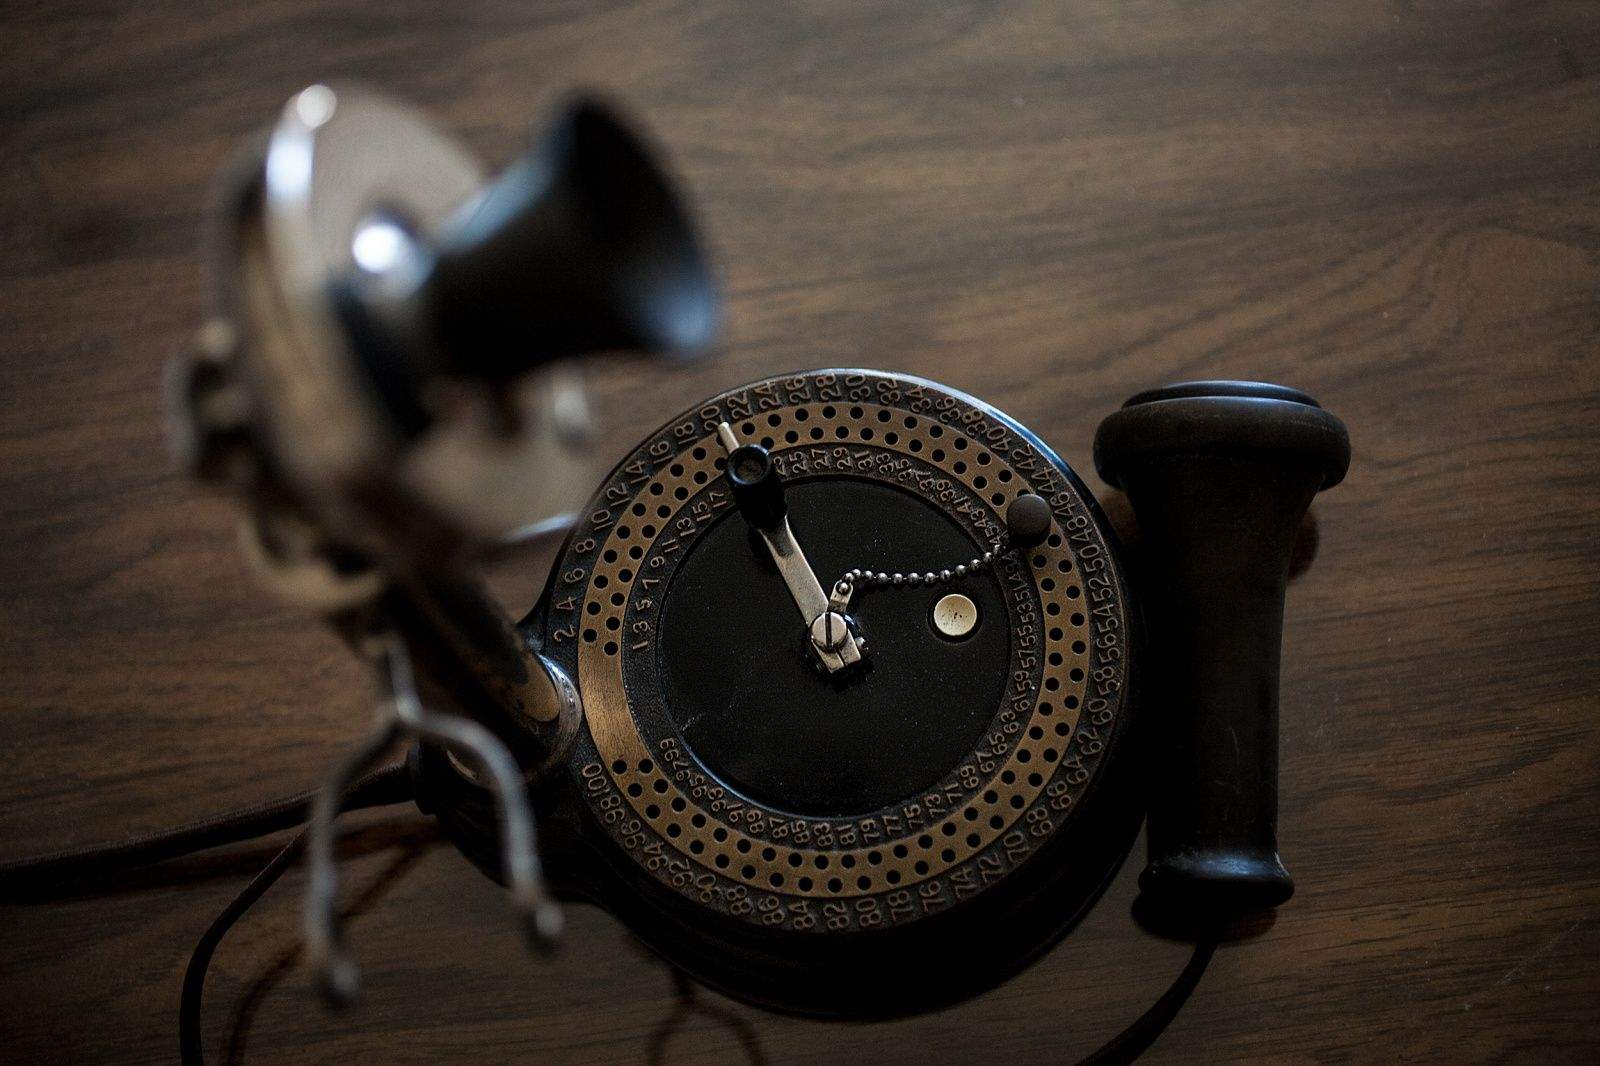 This primitive dial phone was built by Western Electric in 1902 for communities too small for a fulltime operator service. Photo: David Pierini/Cult of Mac